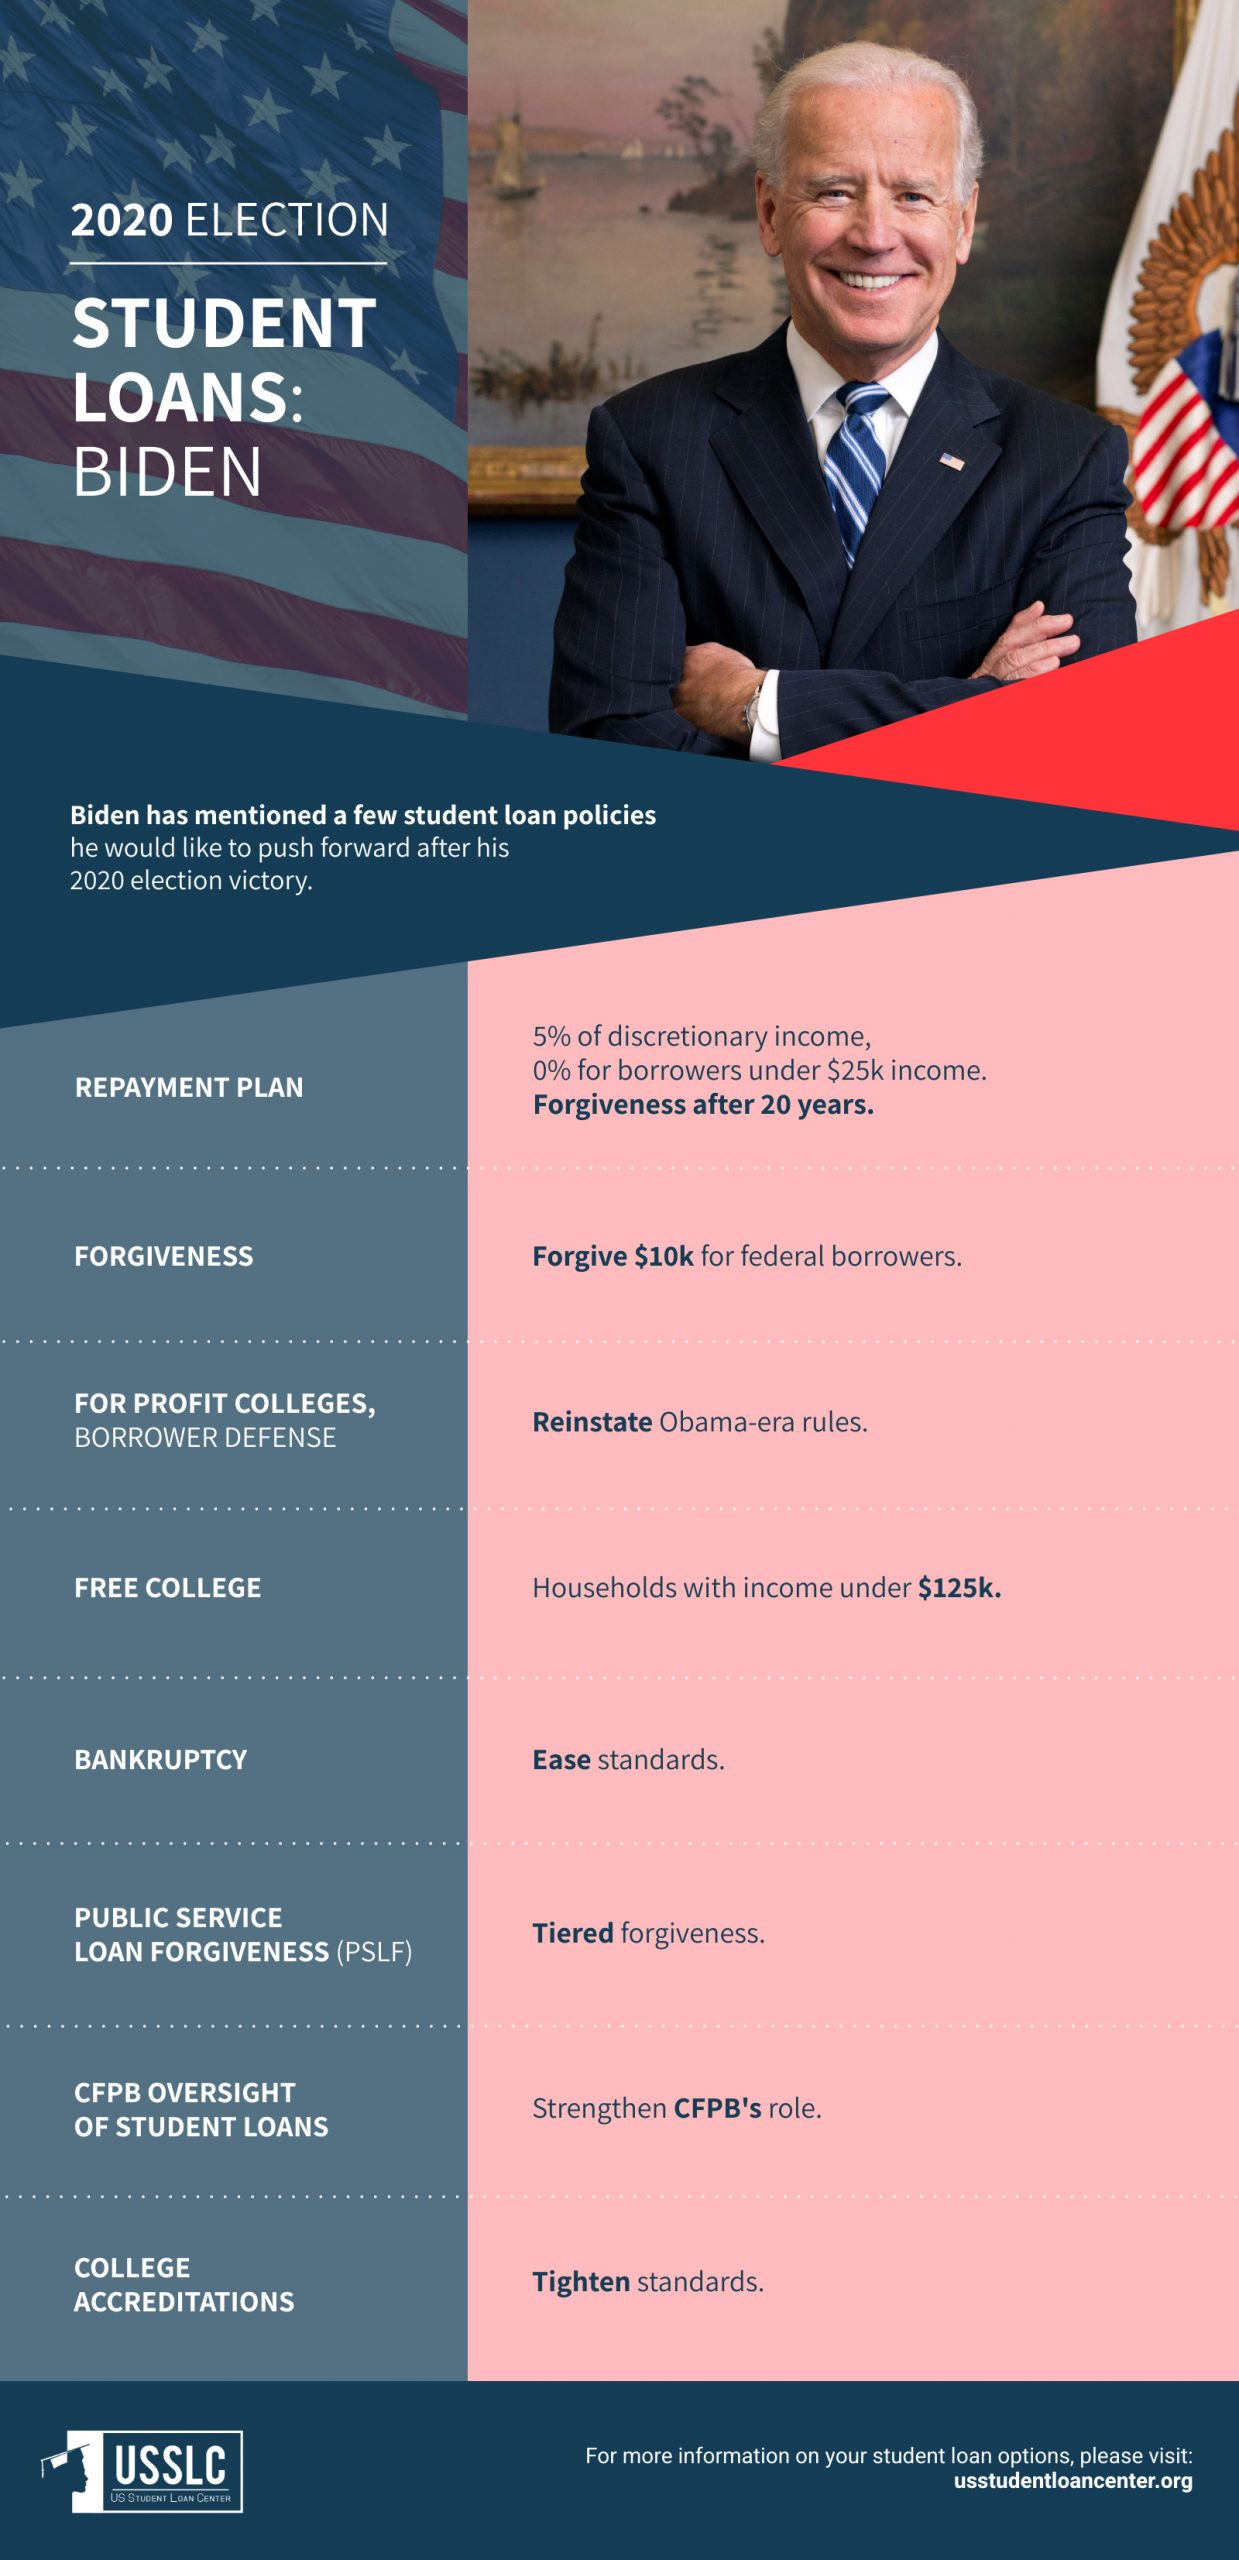 joe biden policies on student loans